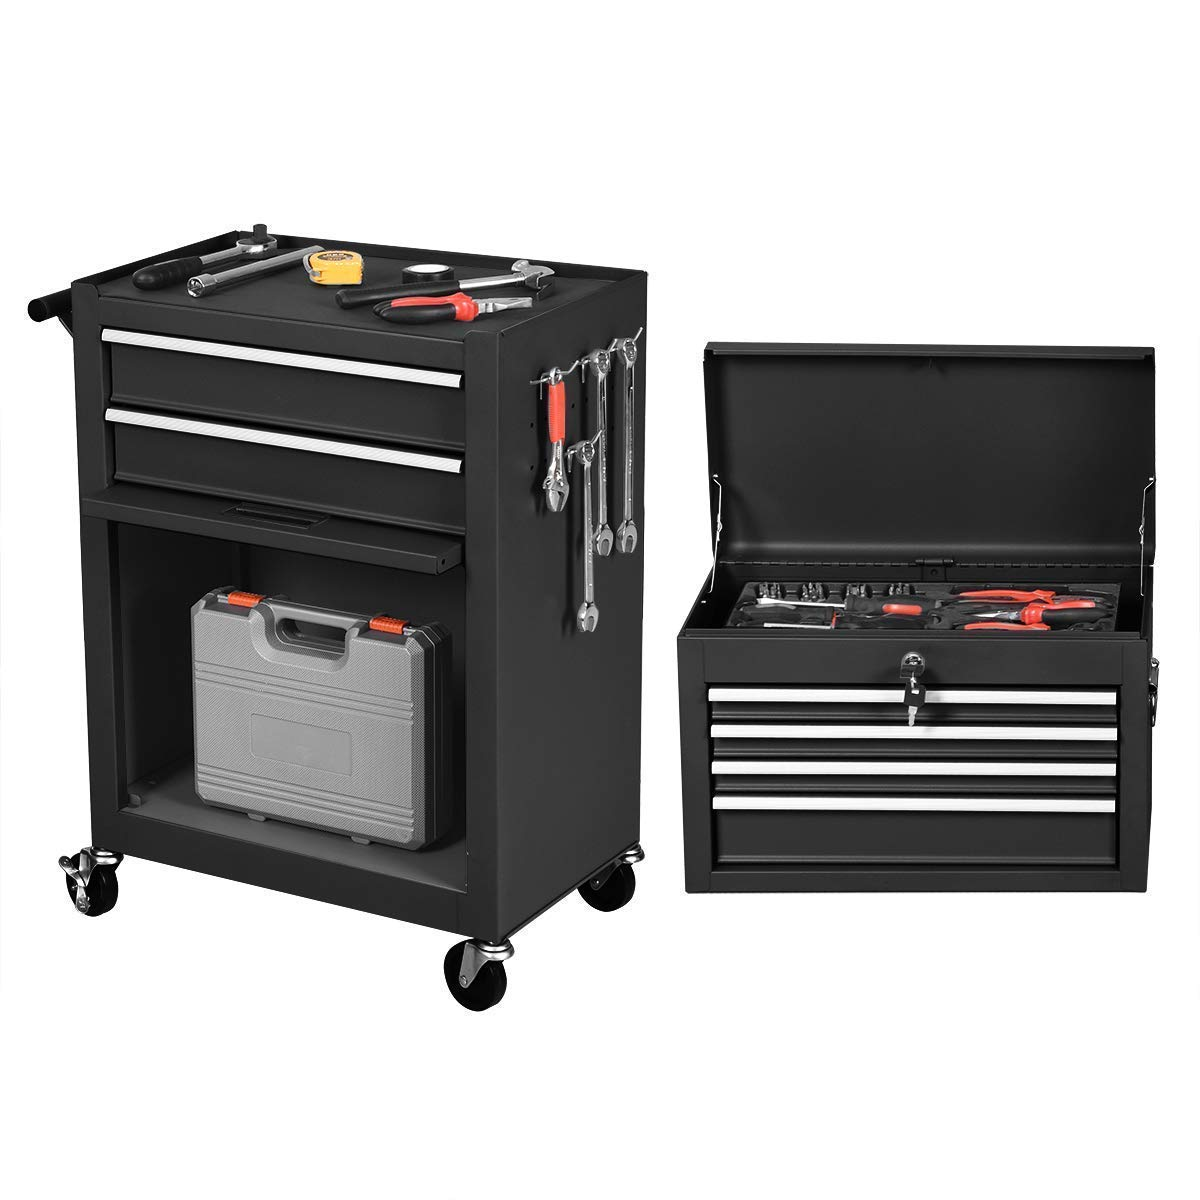 Goplus 6-Drawer Rolling Tool Chest Removable Tool Storage Cabinet with Sliding Drawers, Keyed Locking System Toolbox Organizer (Black) by Goplus (Image #5)